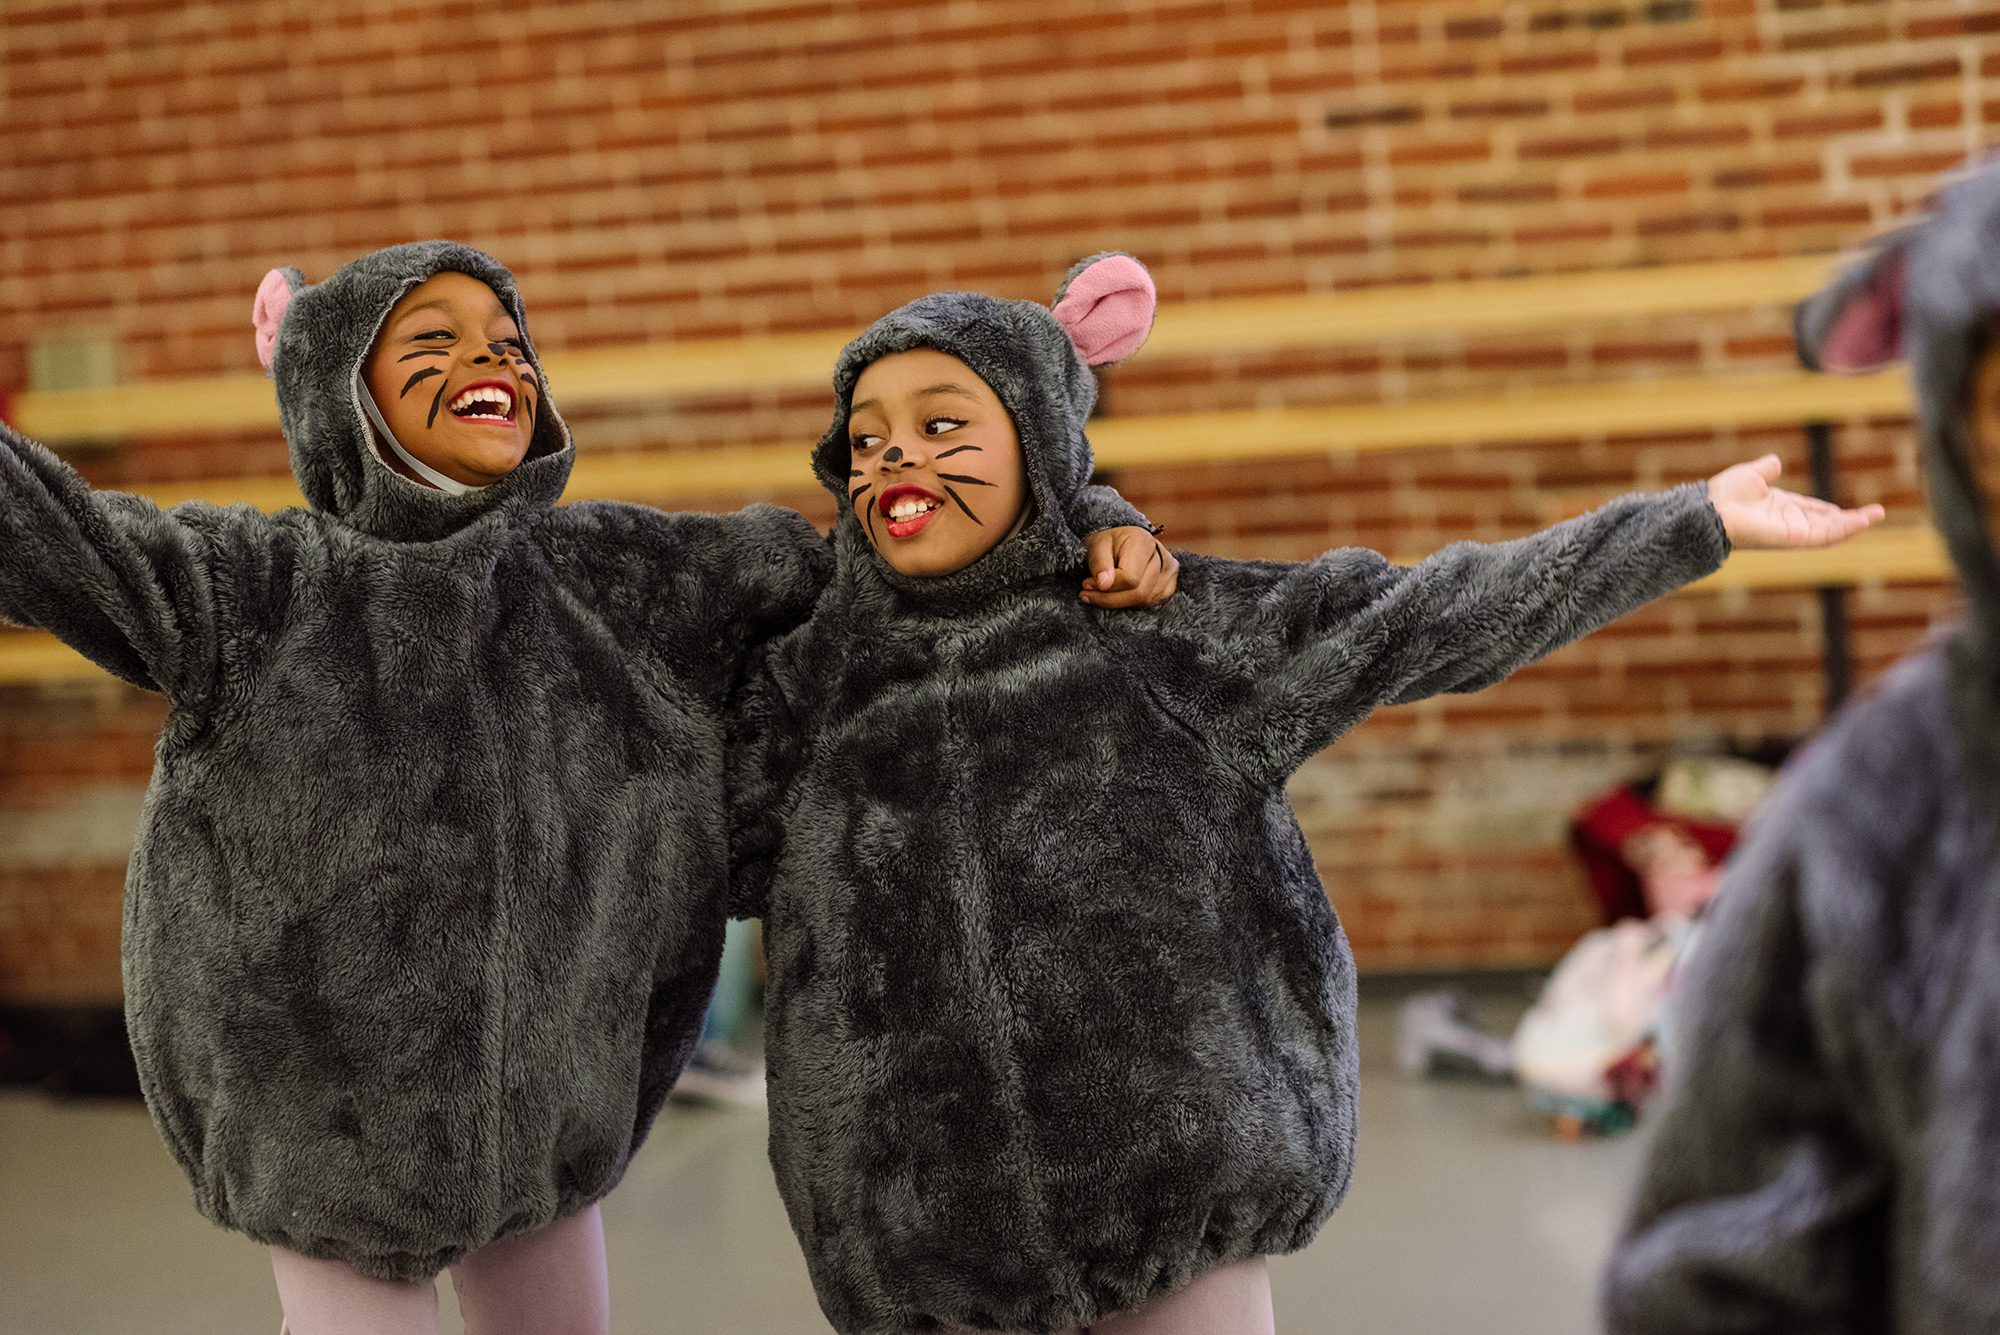 Two children dressed as mice play together